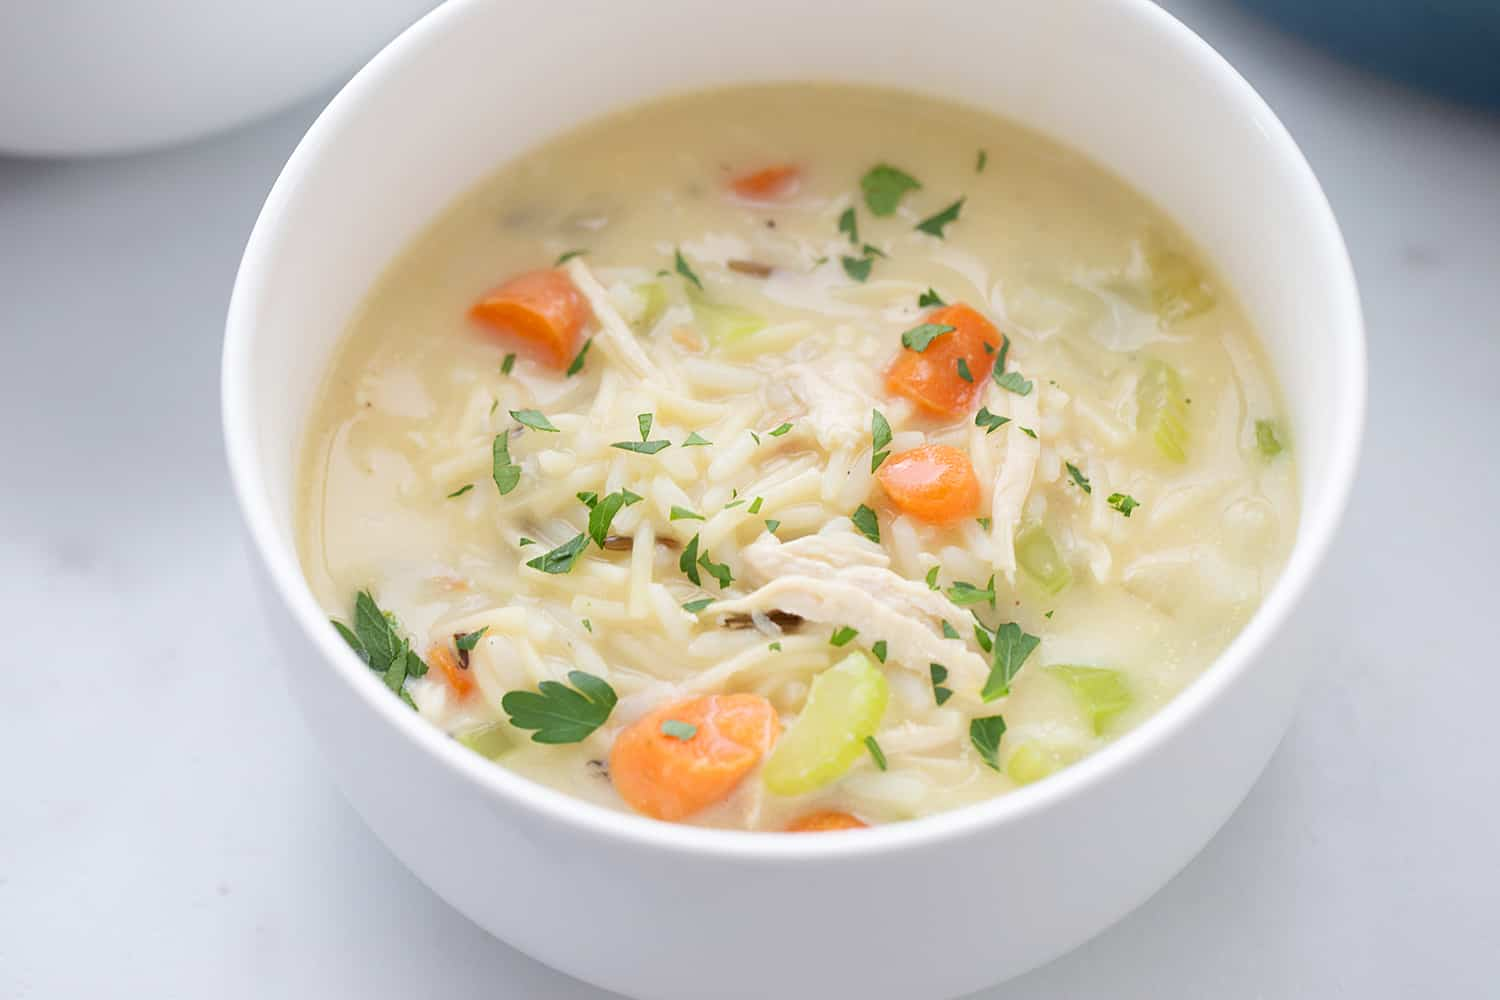 Easy Creamy Chicken Noodle and Rice Soup - Need a comforting weeknight meal that's also quick and easy? Give this creamy chicken noodle and rice soup a try! #soup #chickensoup #chickennoodlesoup #easyrecipe #halfscratched #maindish #easysoup #souprecipe